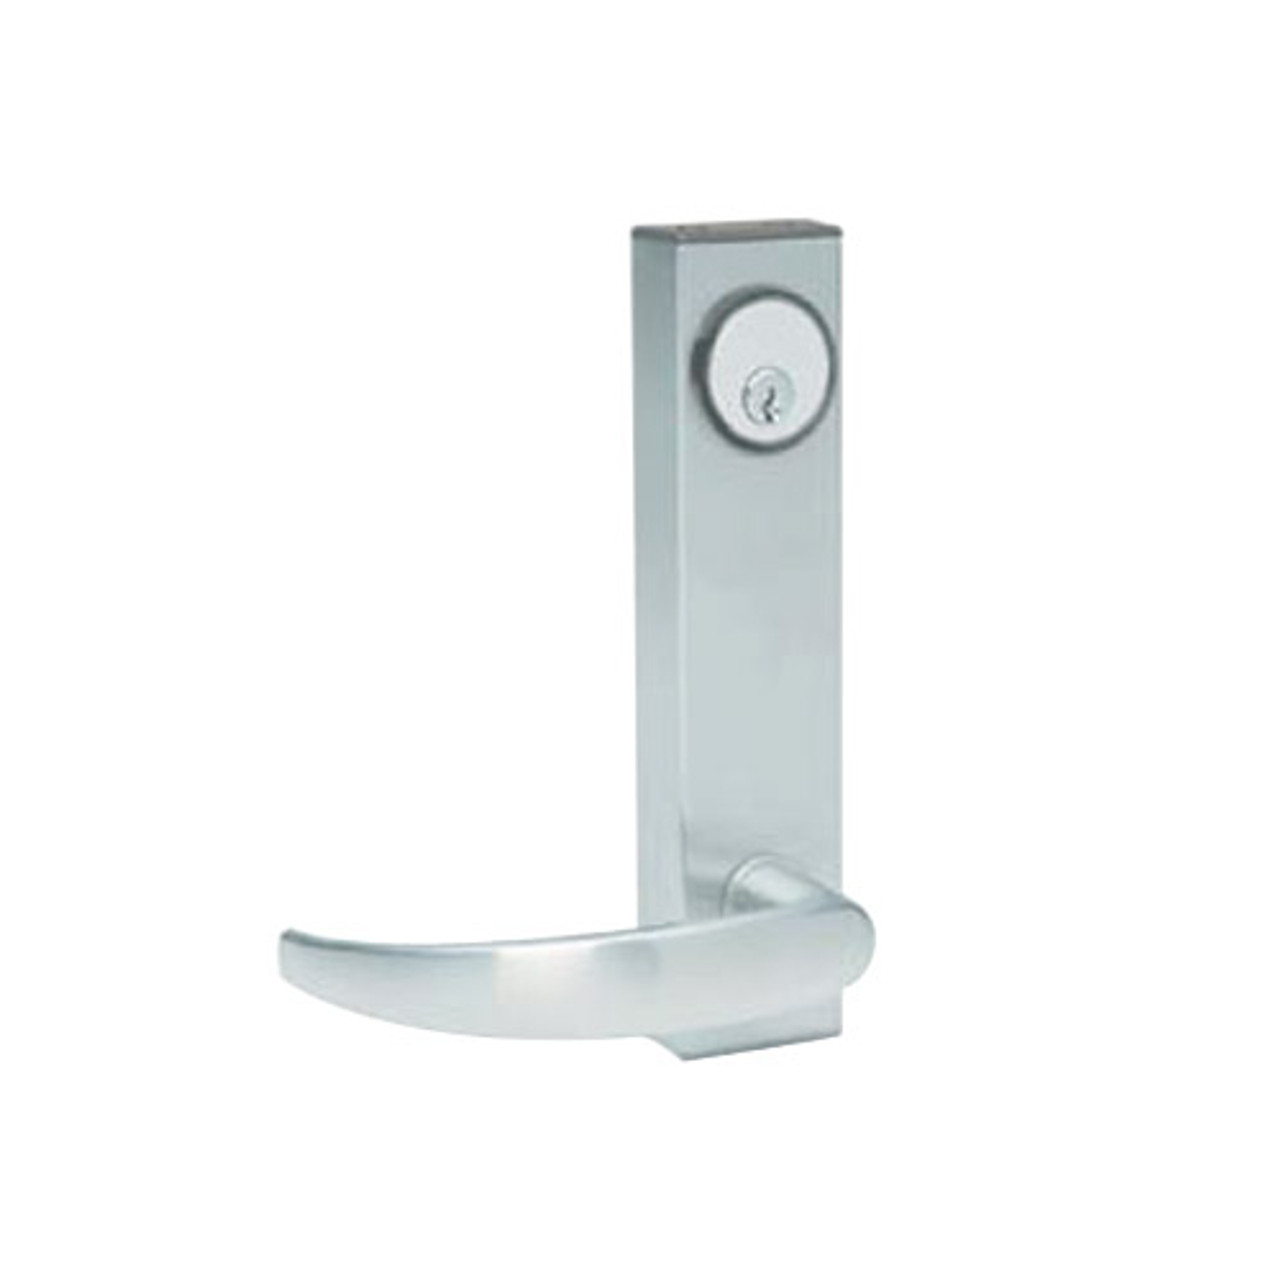 3080-01-0-34-US32 Adams Rite Standard Entry Trim with Curve Lever in Bright Stainless Finish